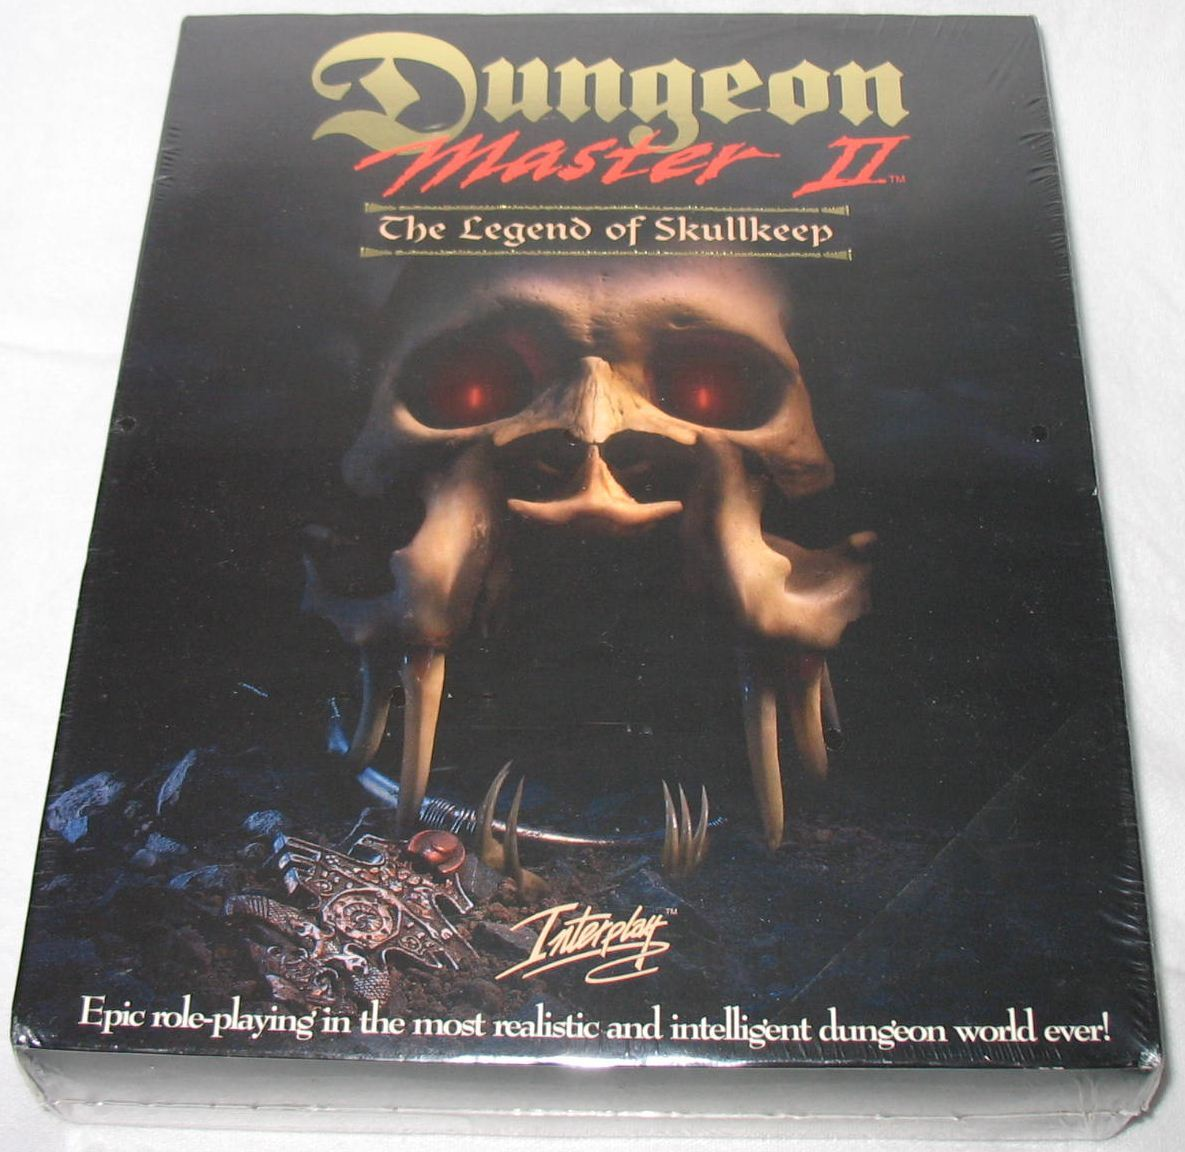 Game - Dungeon Master II - US - PC - Big Box - Box - Front - Photo